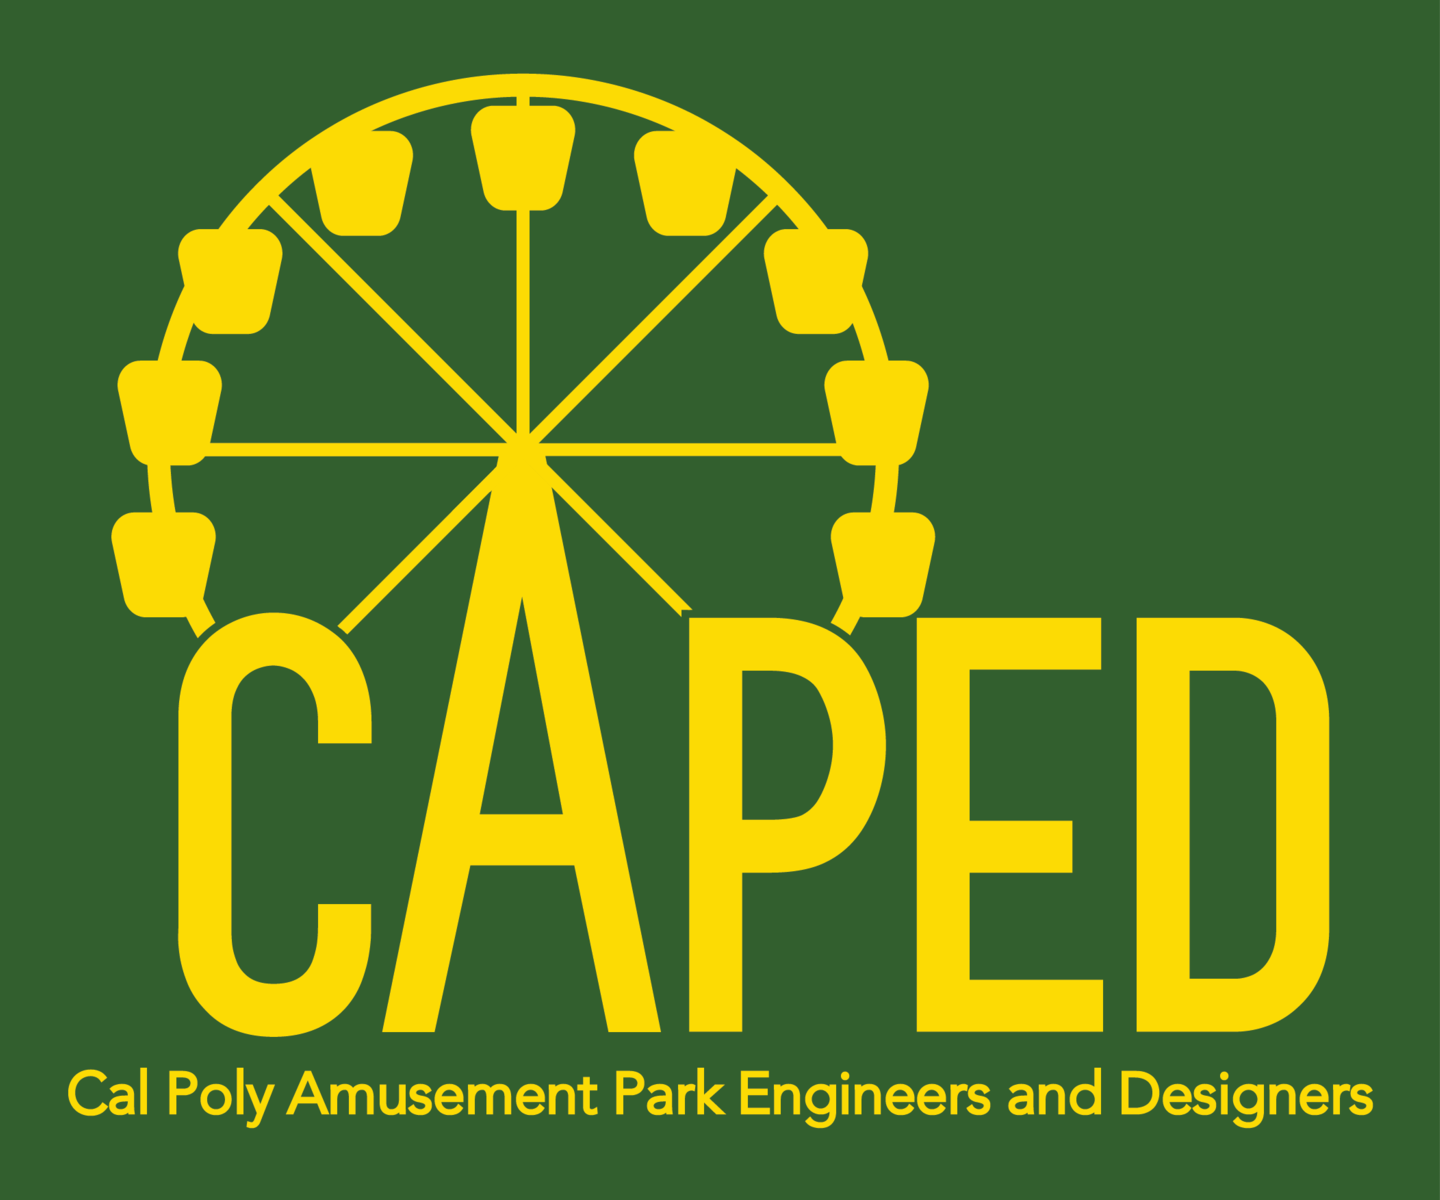 Cal Poly CAPED